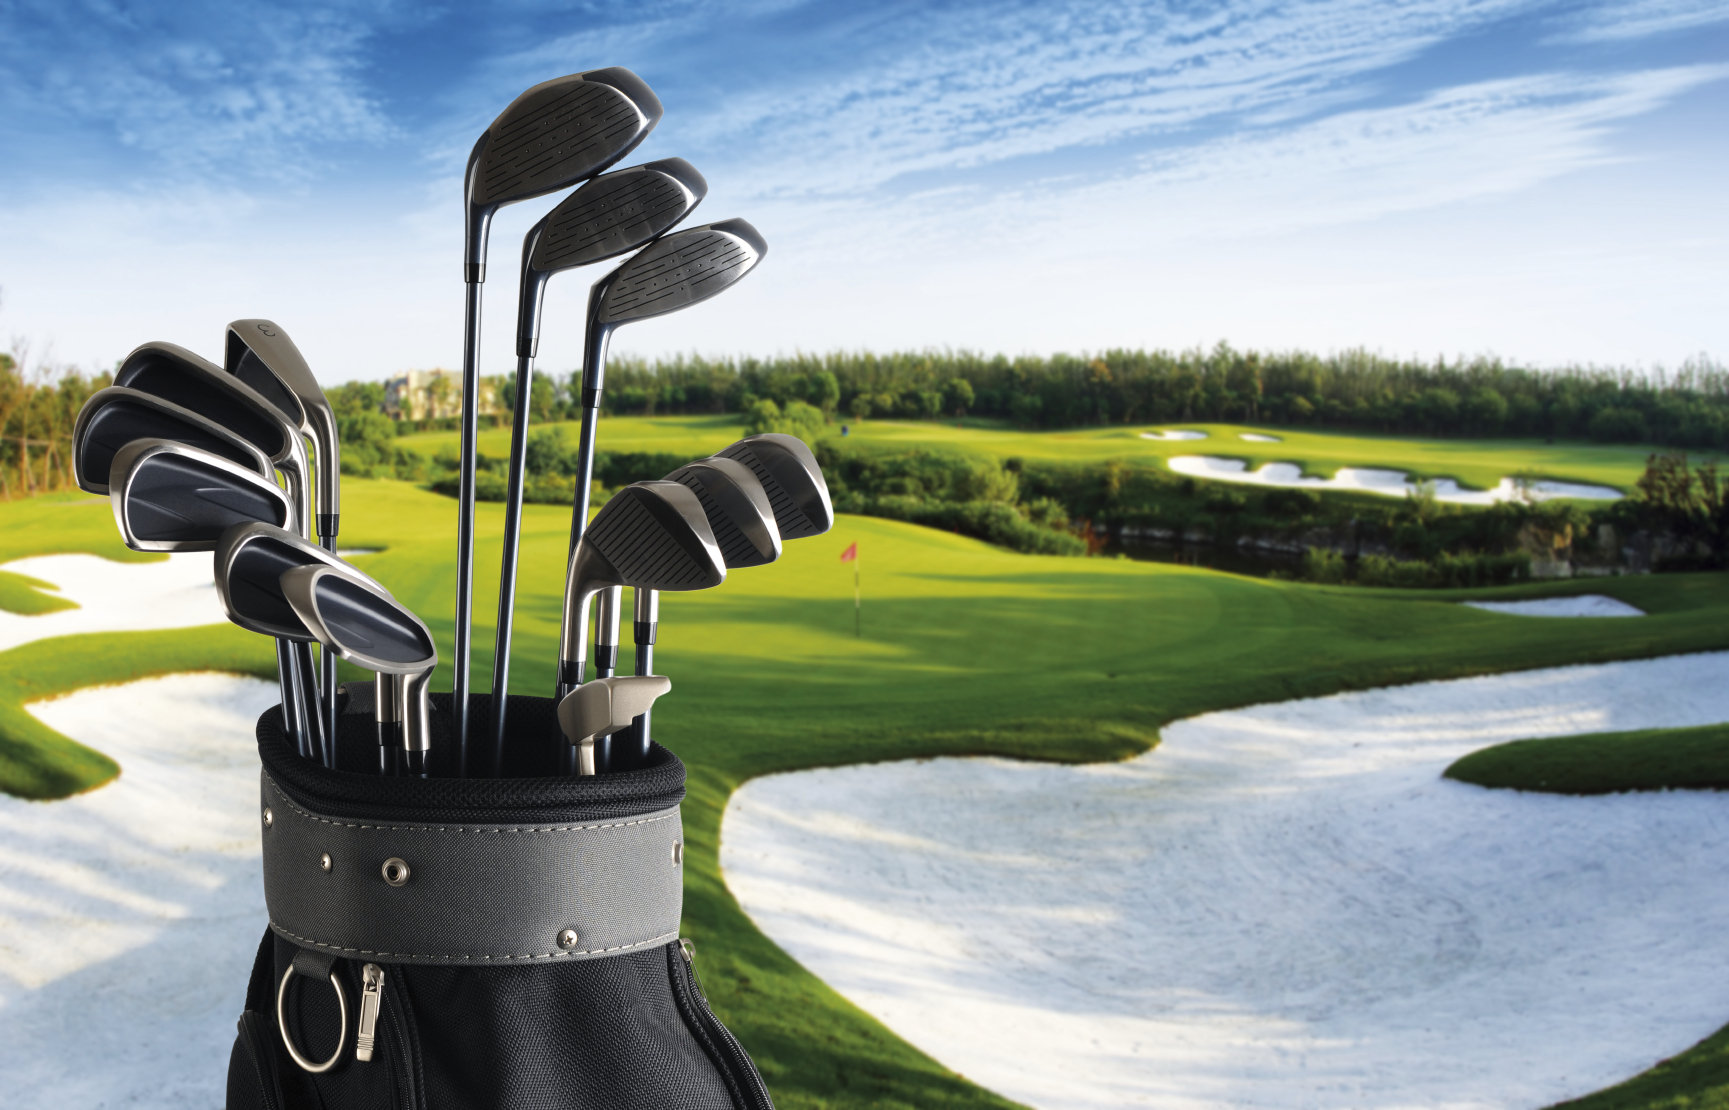 Golf clubs for hire and Spanish golf course